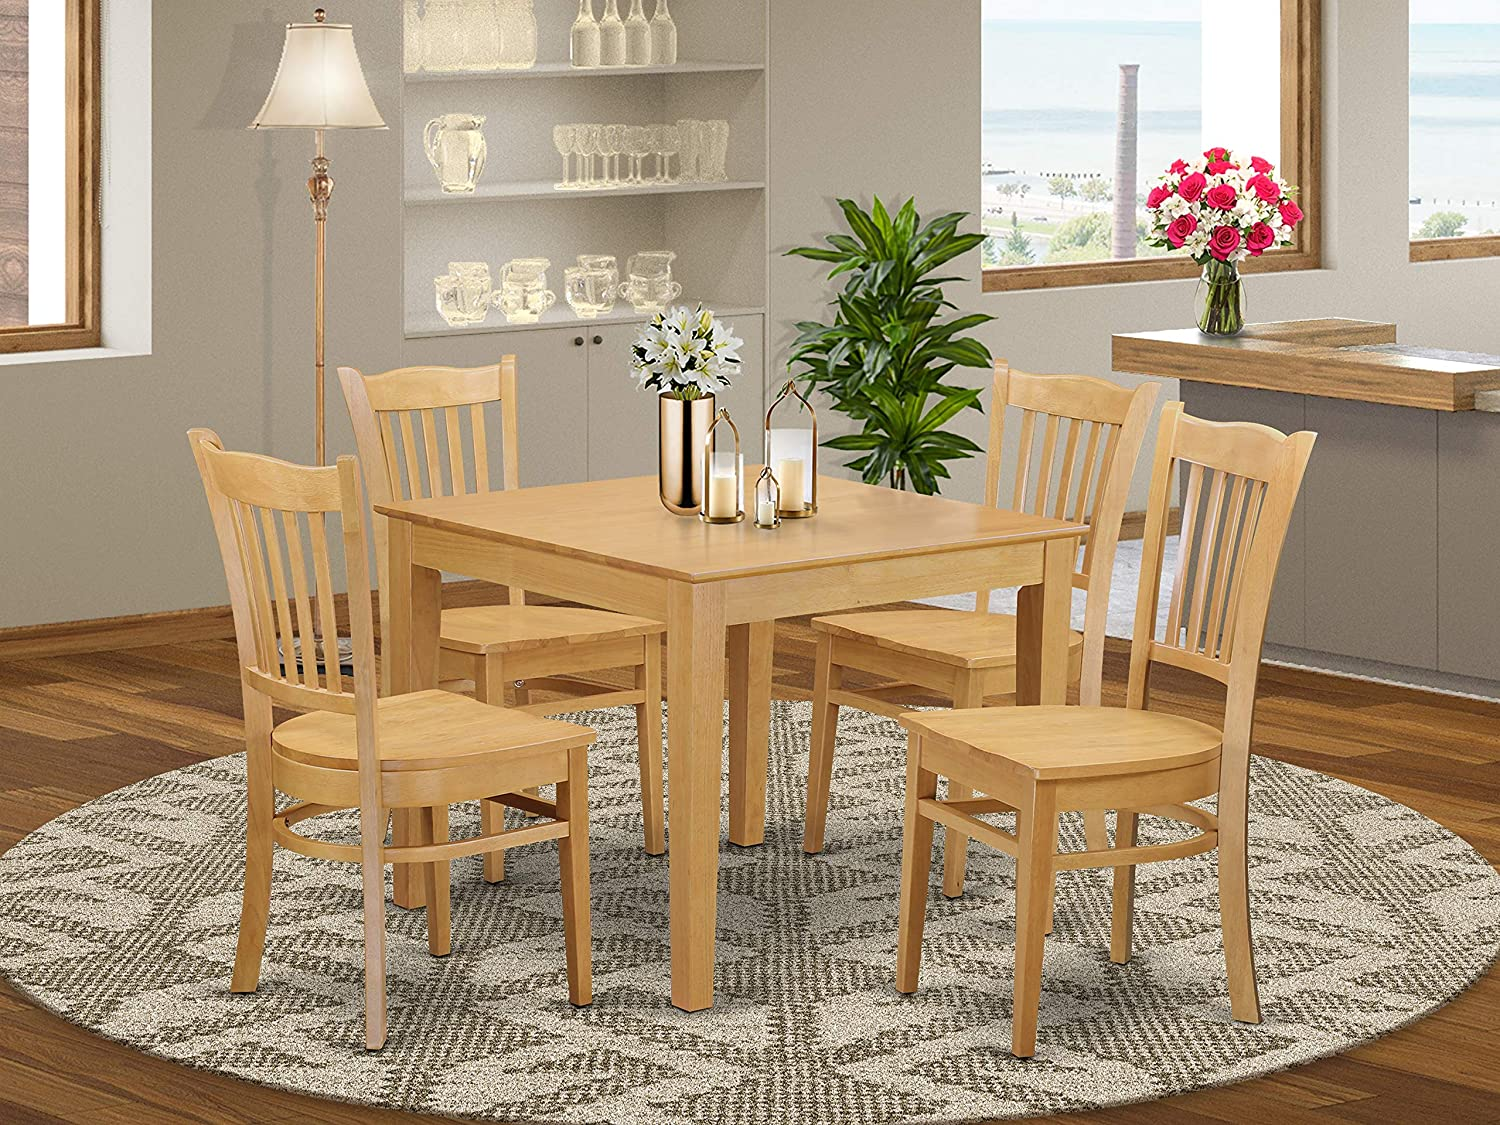 9 PC Kitchen Table set - Kitchen dinette Table and 9 Dining Chairs